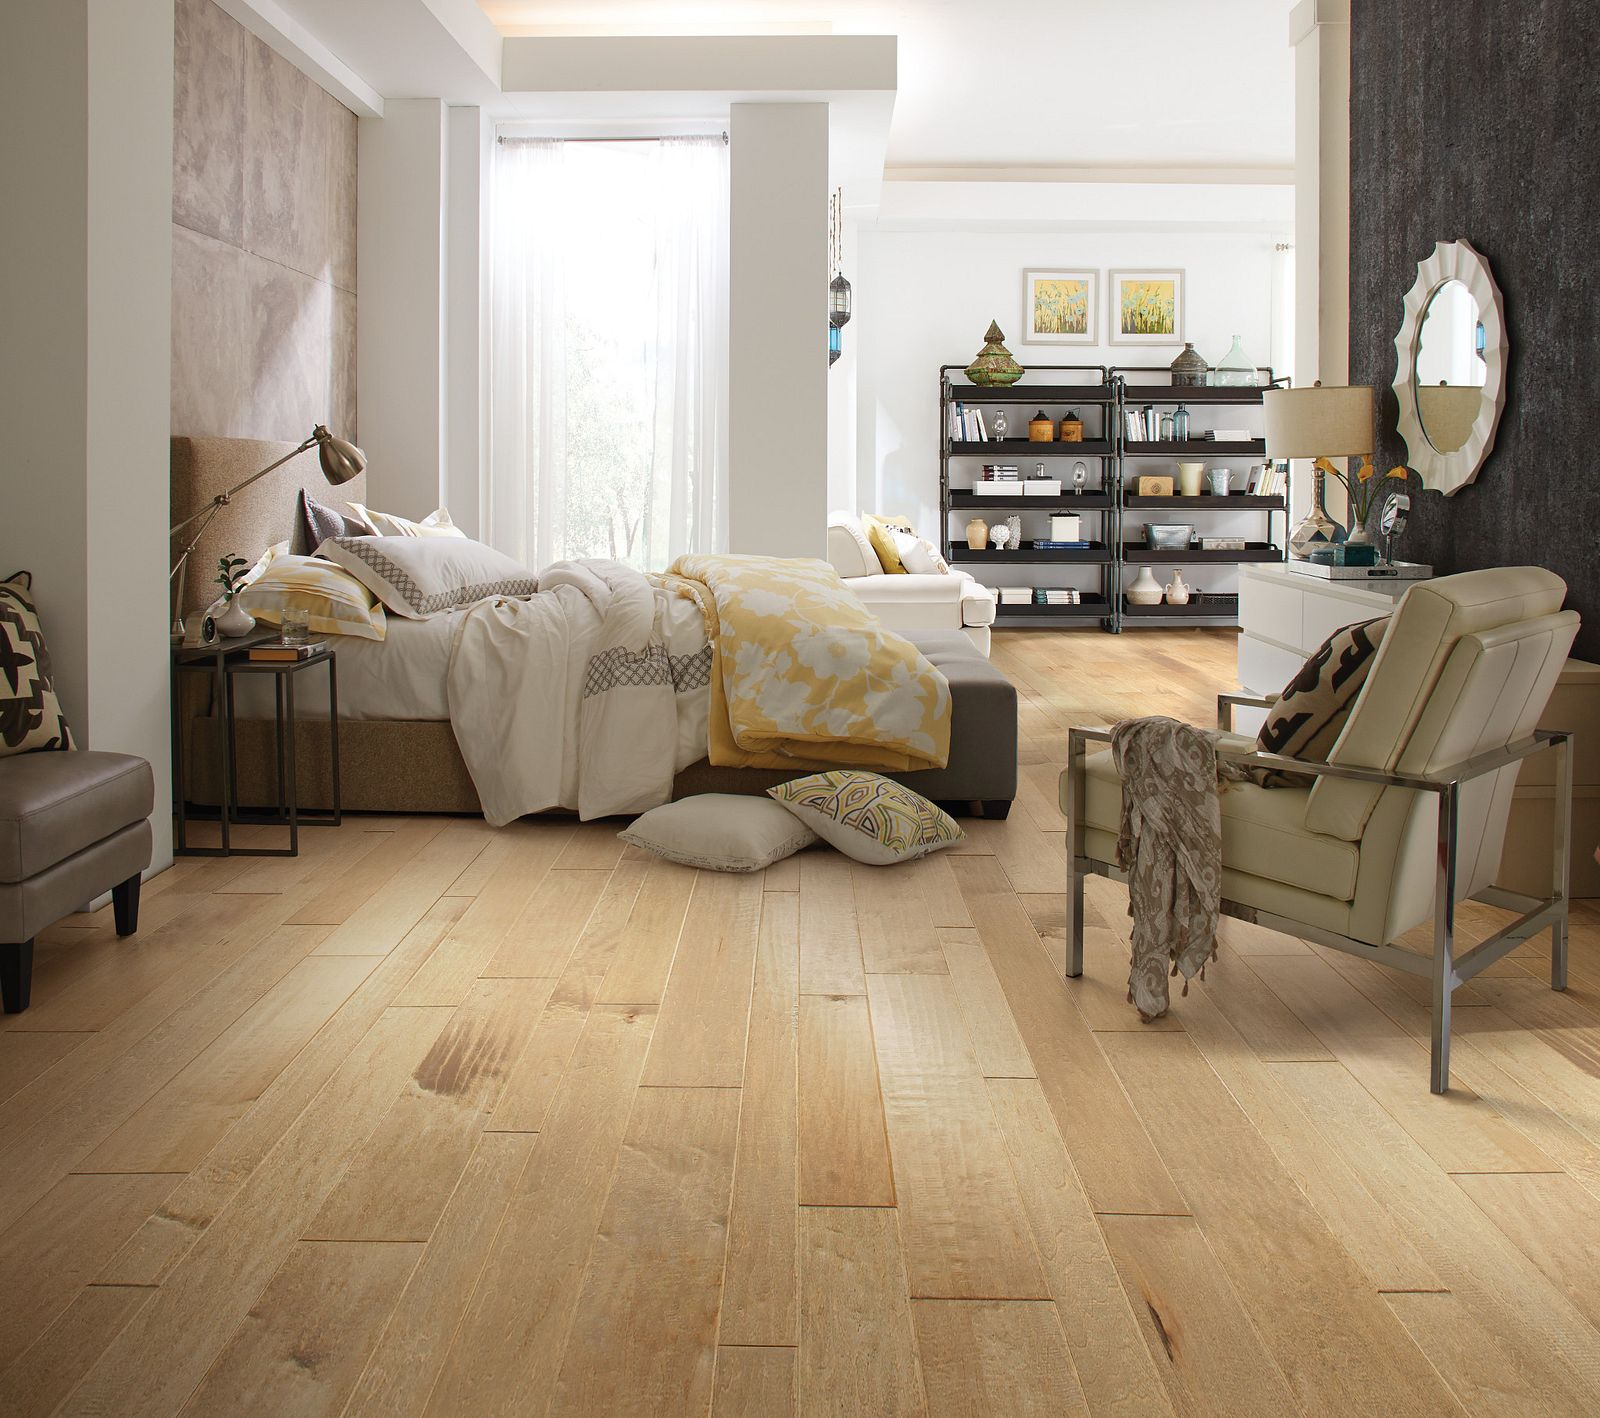 Choosing Varying Widths For Your Hardwood Floor Shaw Floors